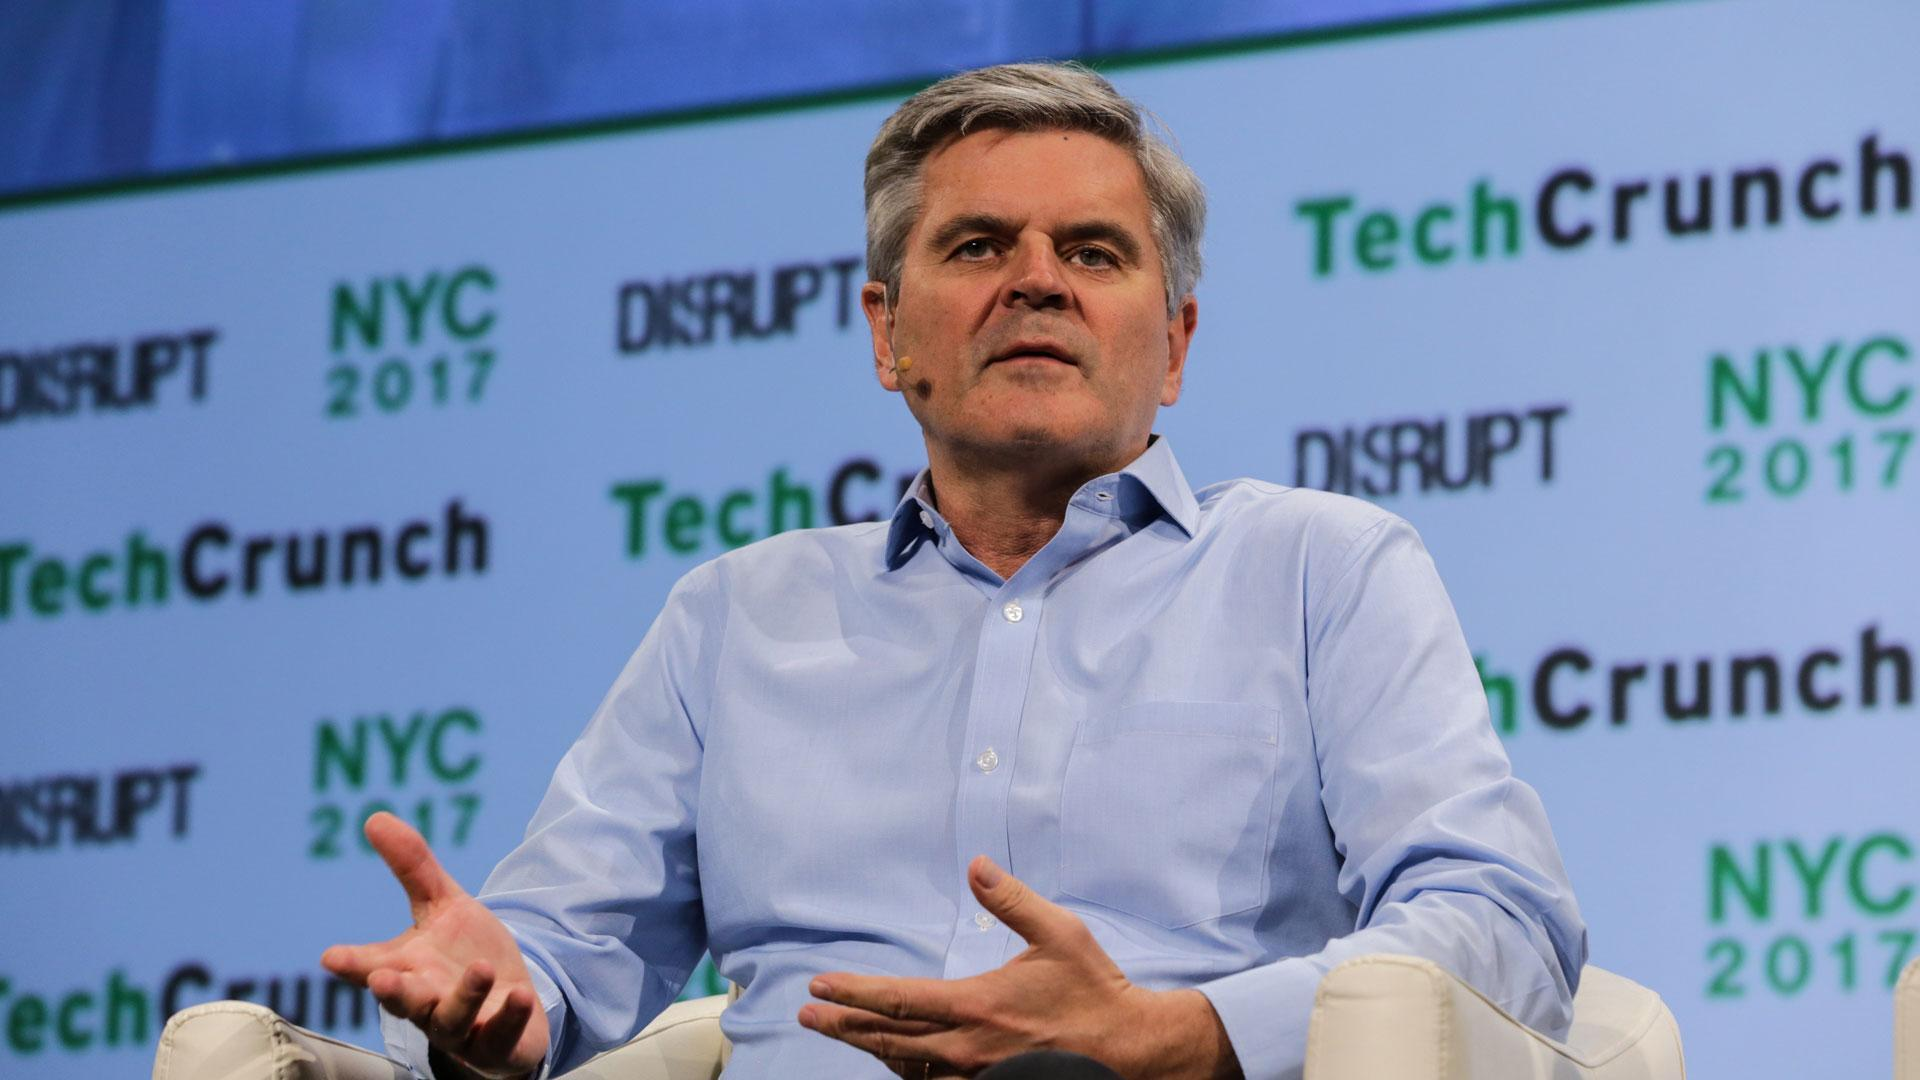 Leveling the Playing Field with Steve Case